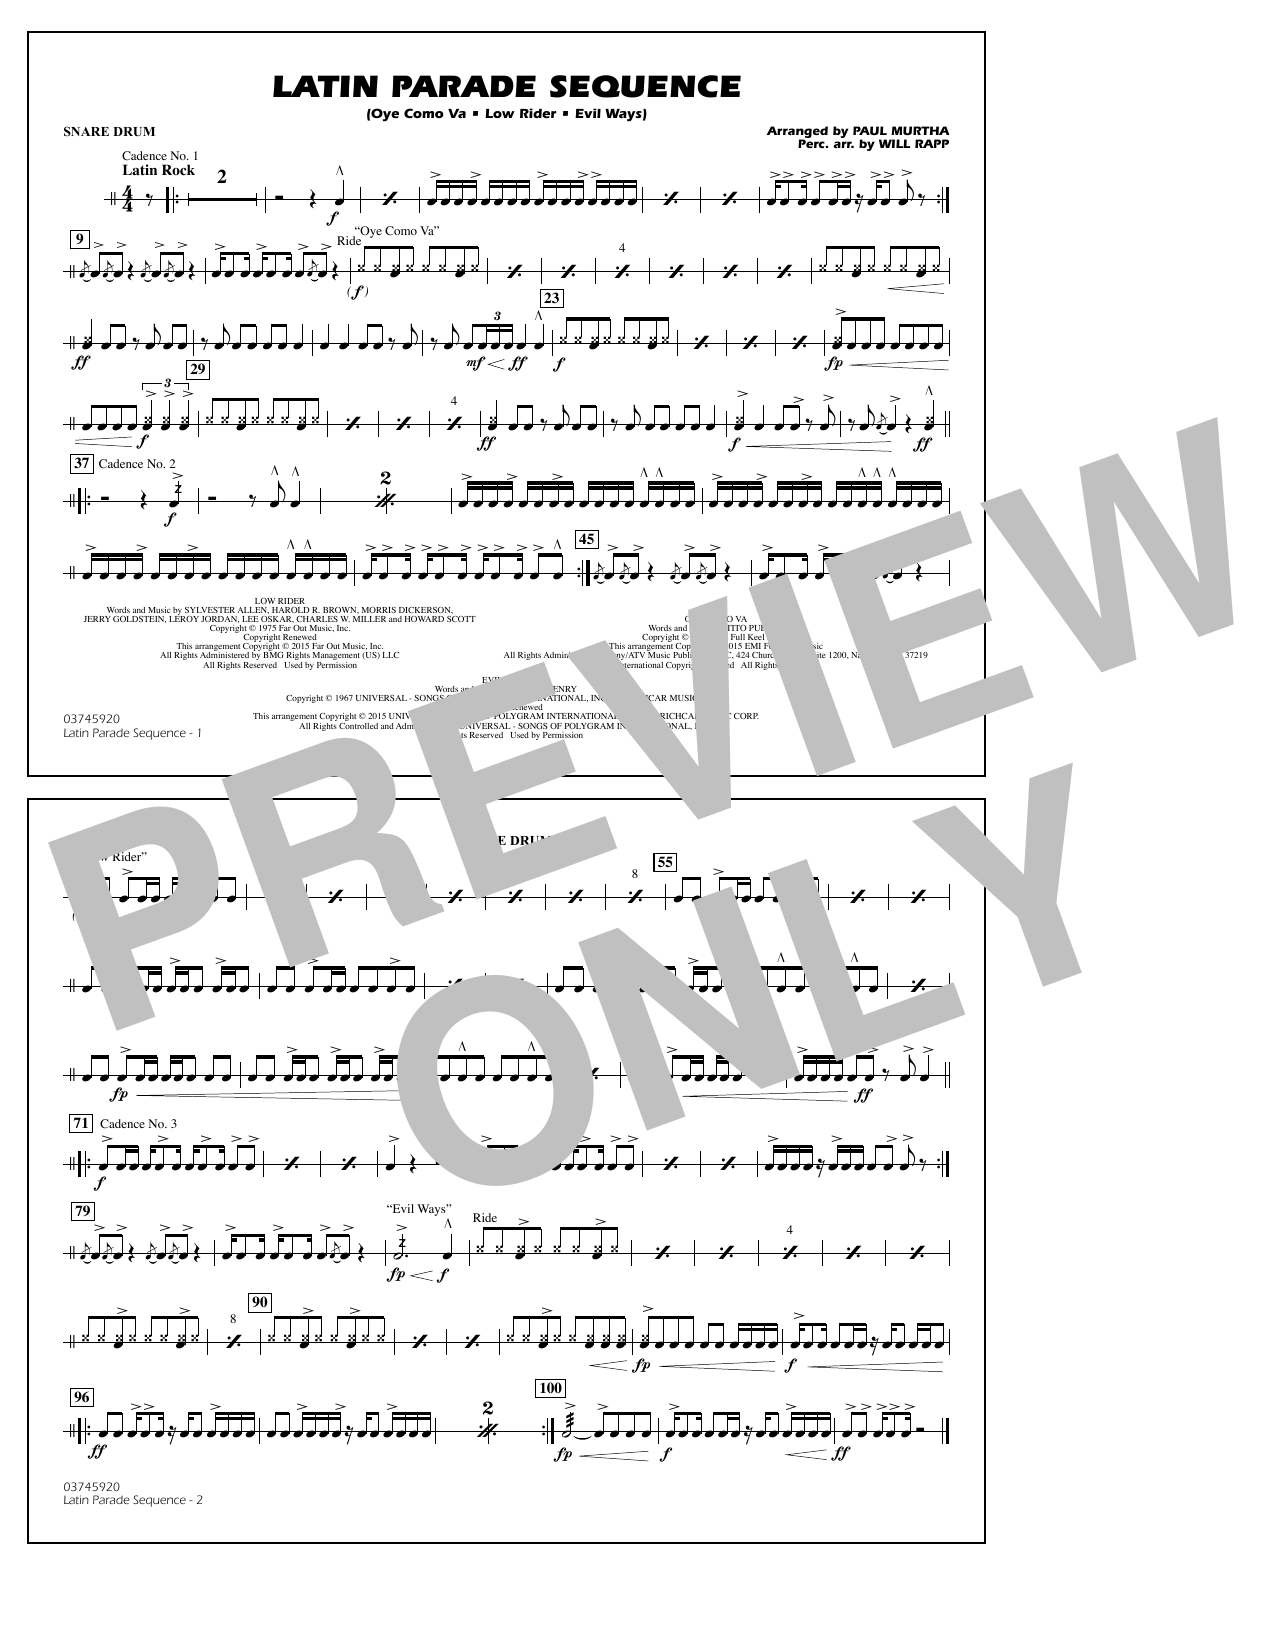 Paul Murtha Latin Parade Sequence - Snare Drum sheet music notes and chords